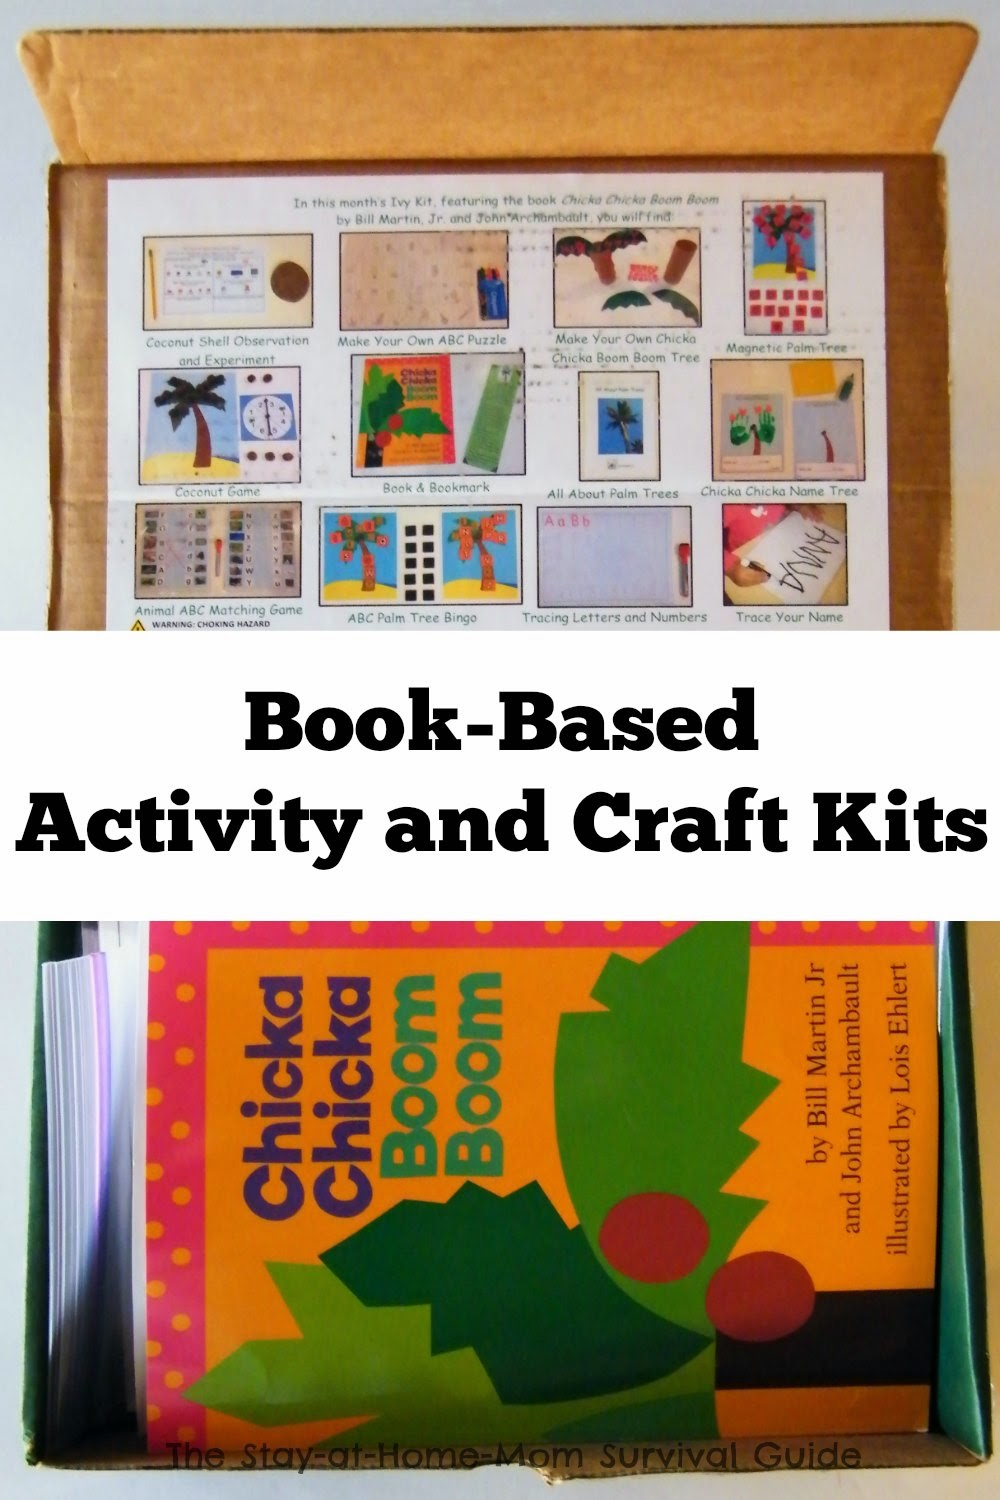 Book-Based Activity and Craft Kits for Kids